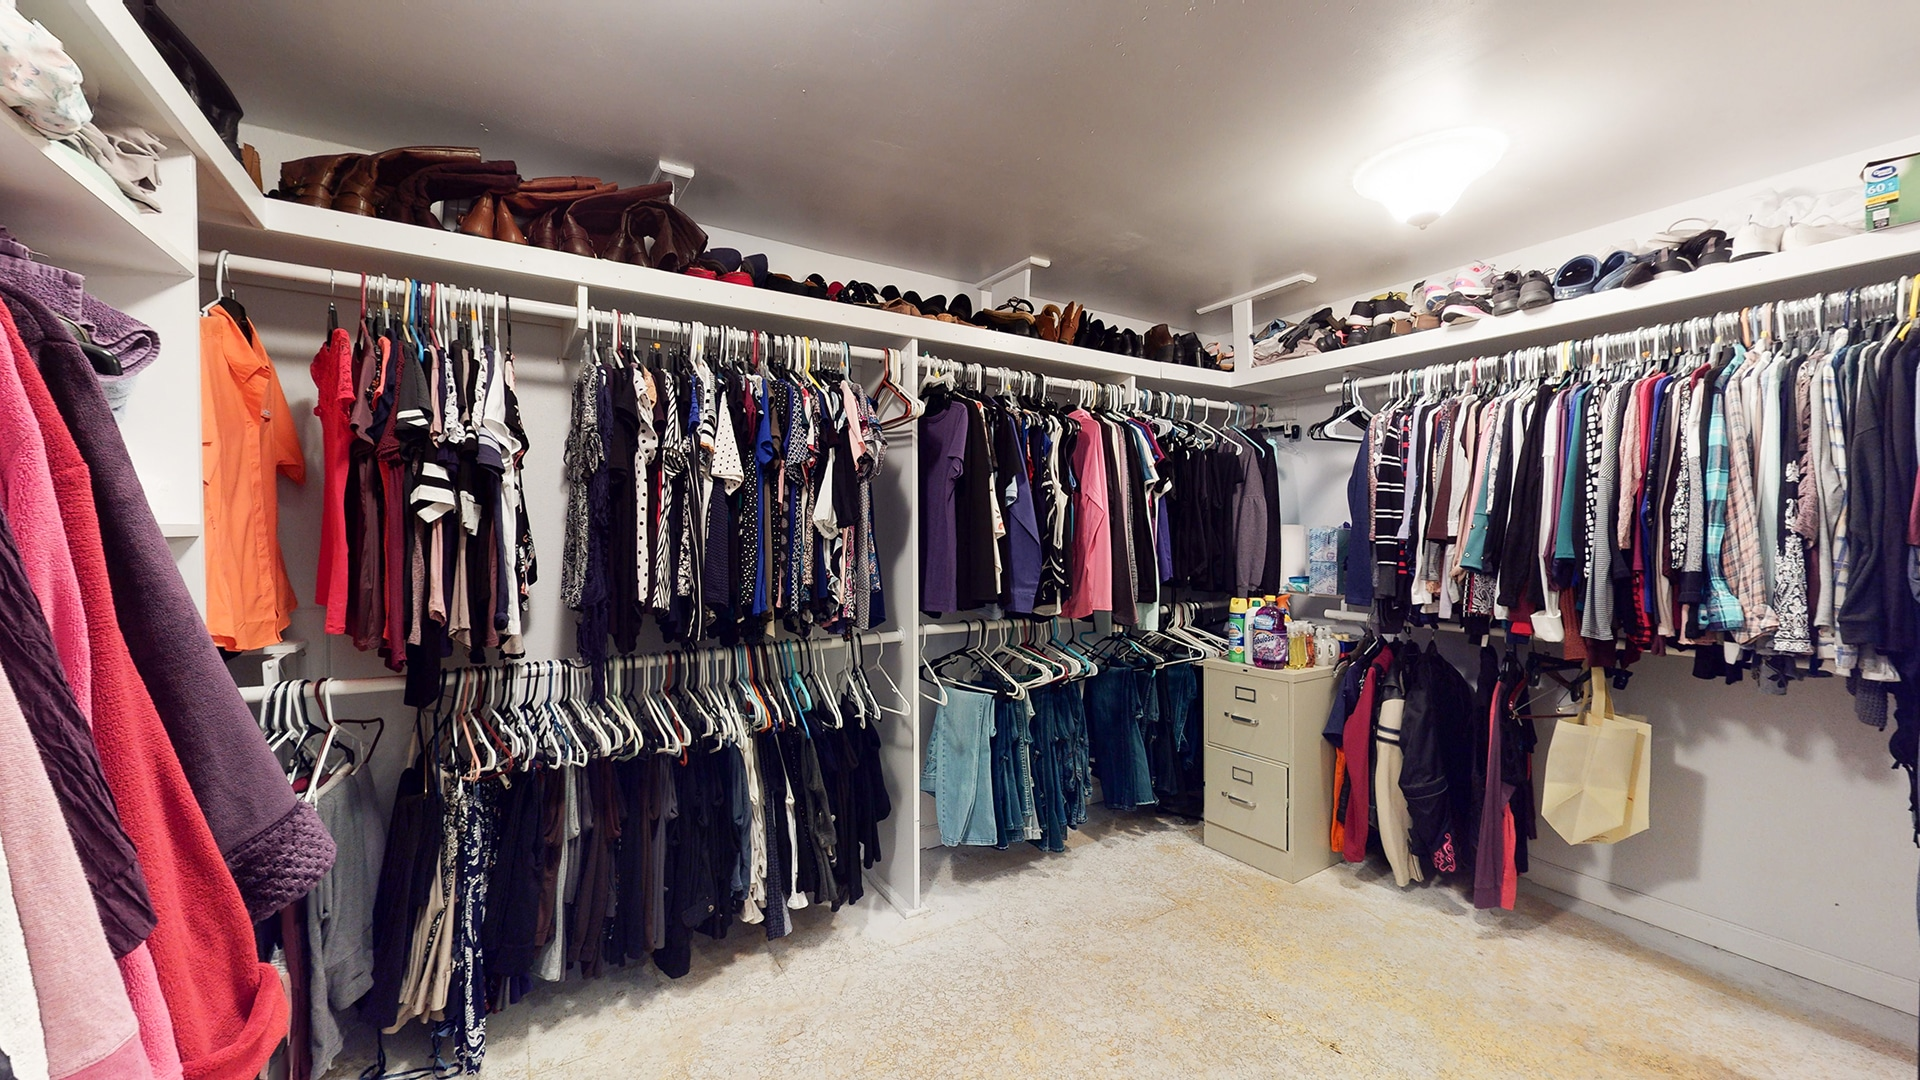 Arvada Home For Sale, Large Master Closet, Several Racks of Clothes